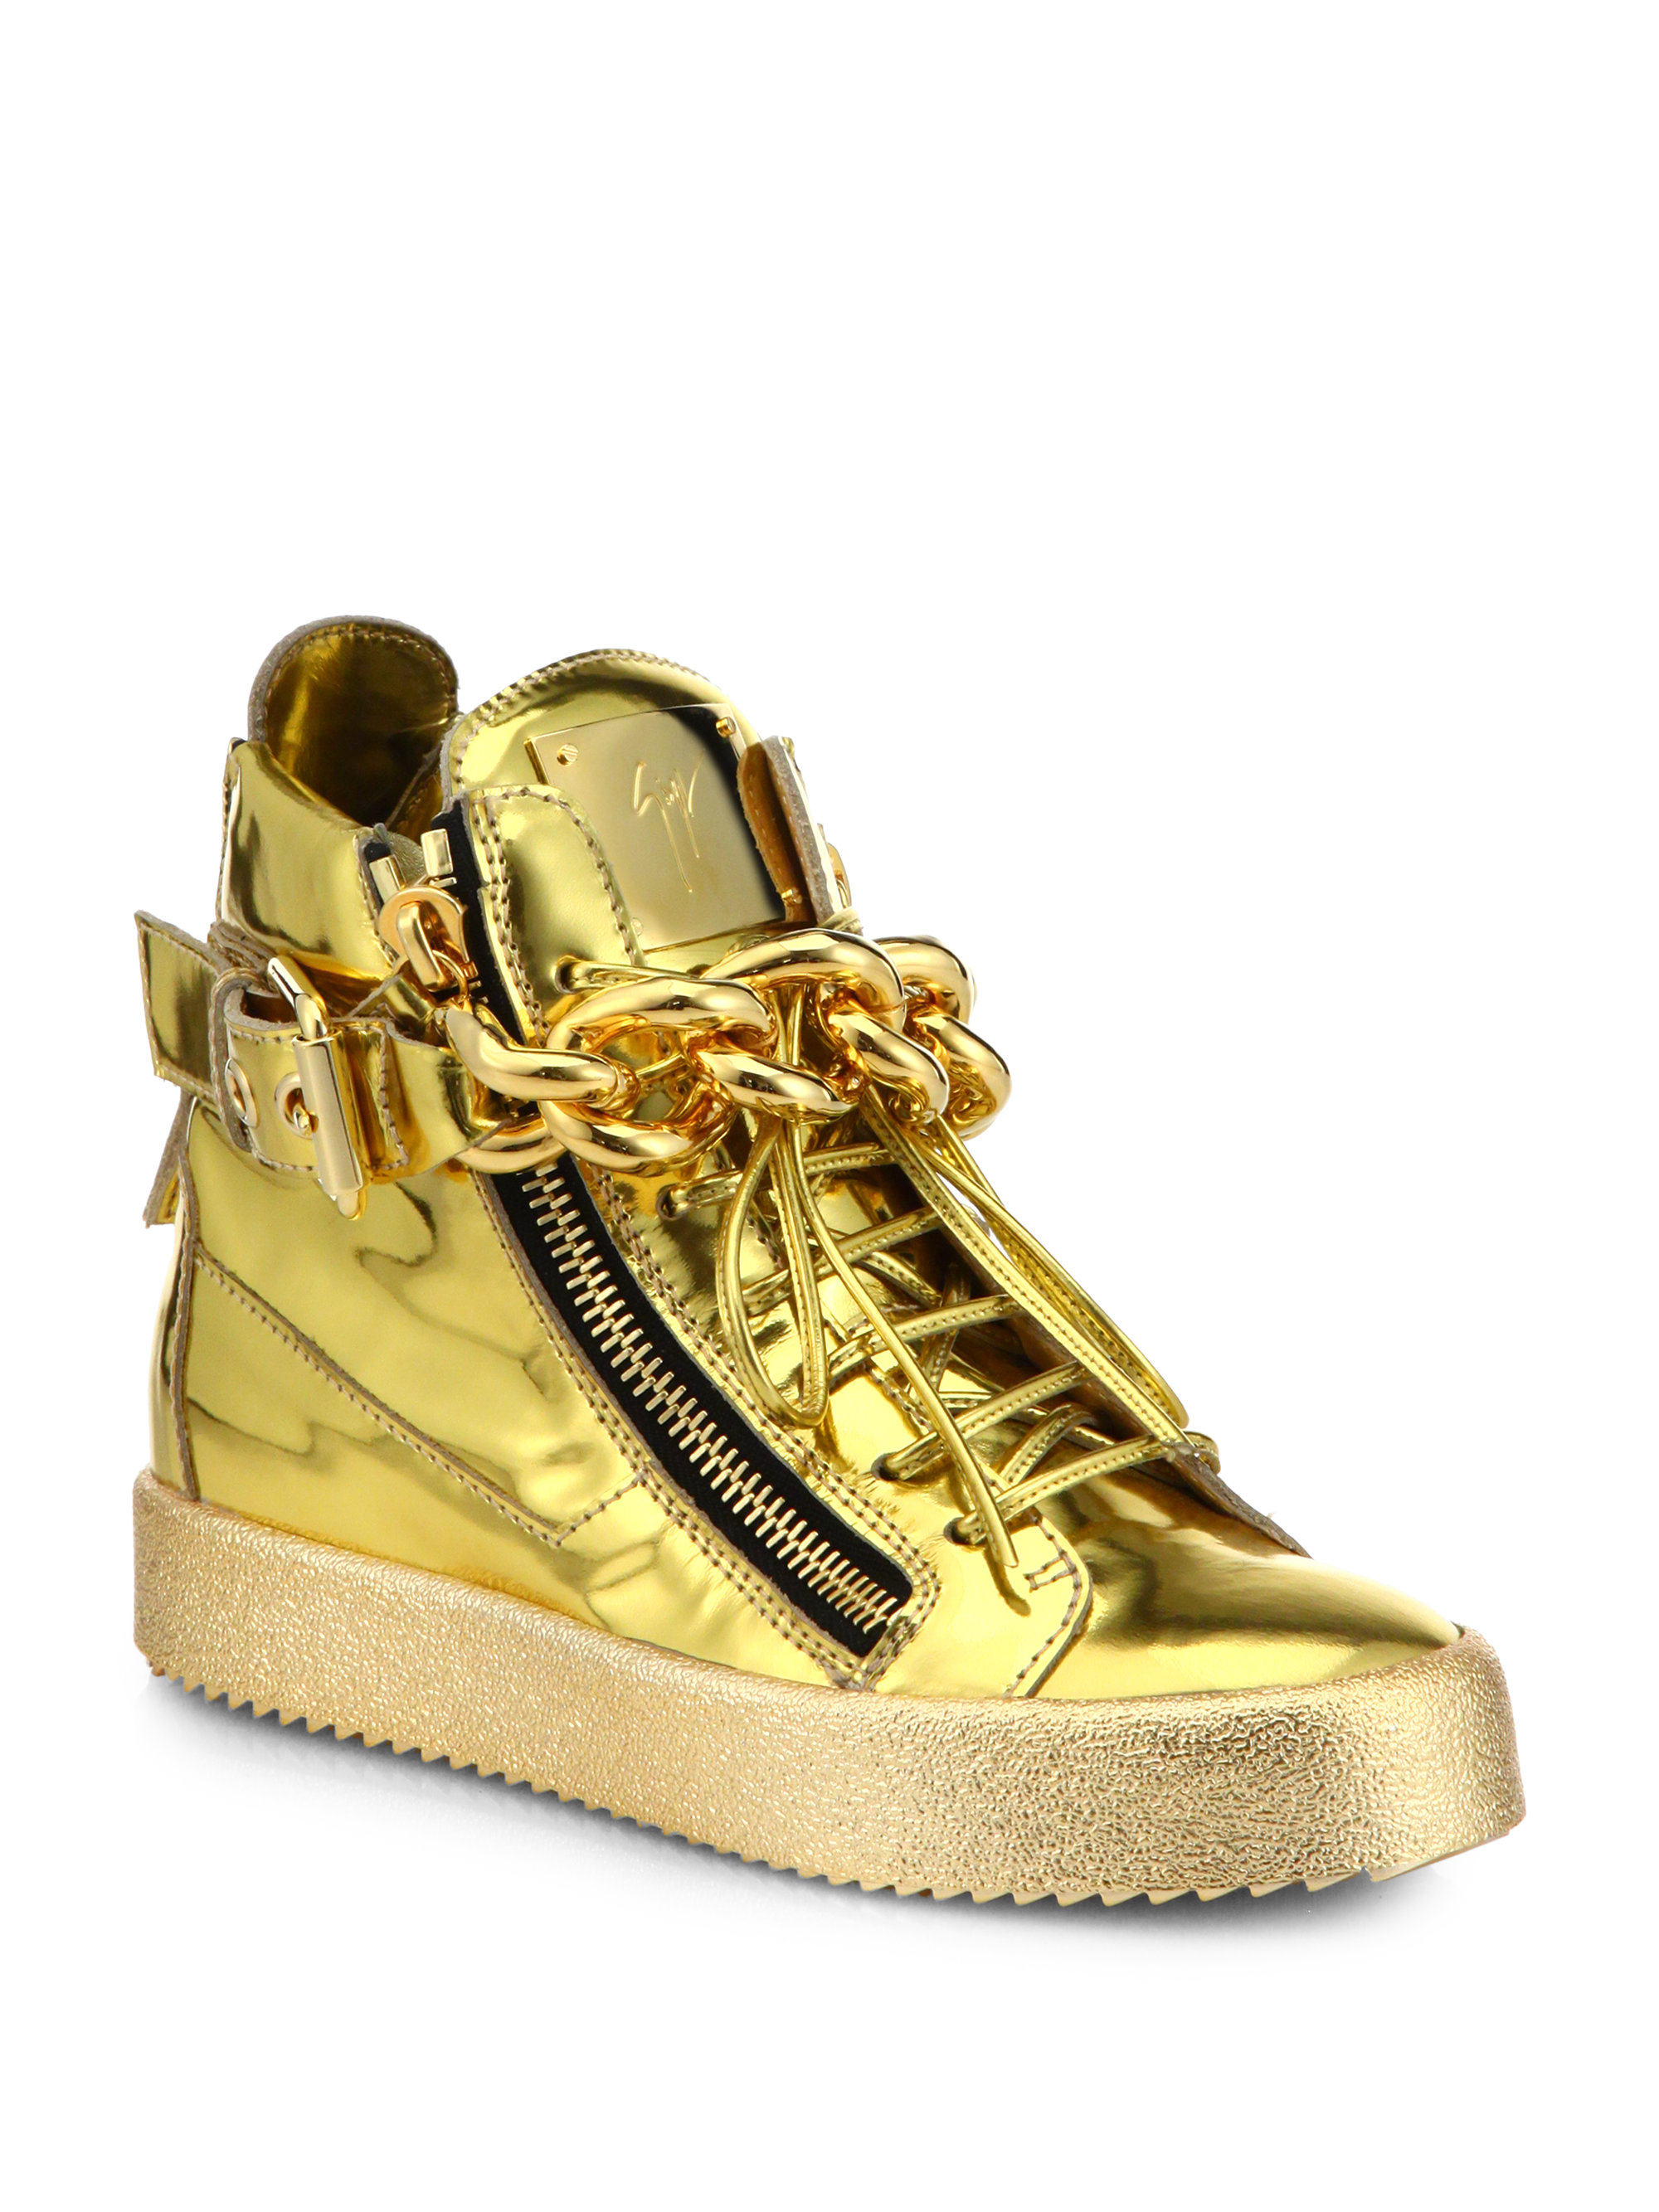 Giuseppe Zanotti Chain-Link High-Top Sneakers